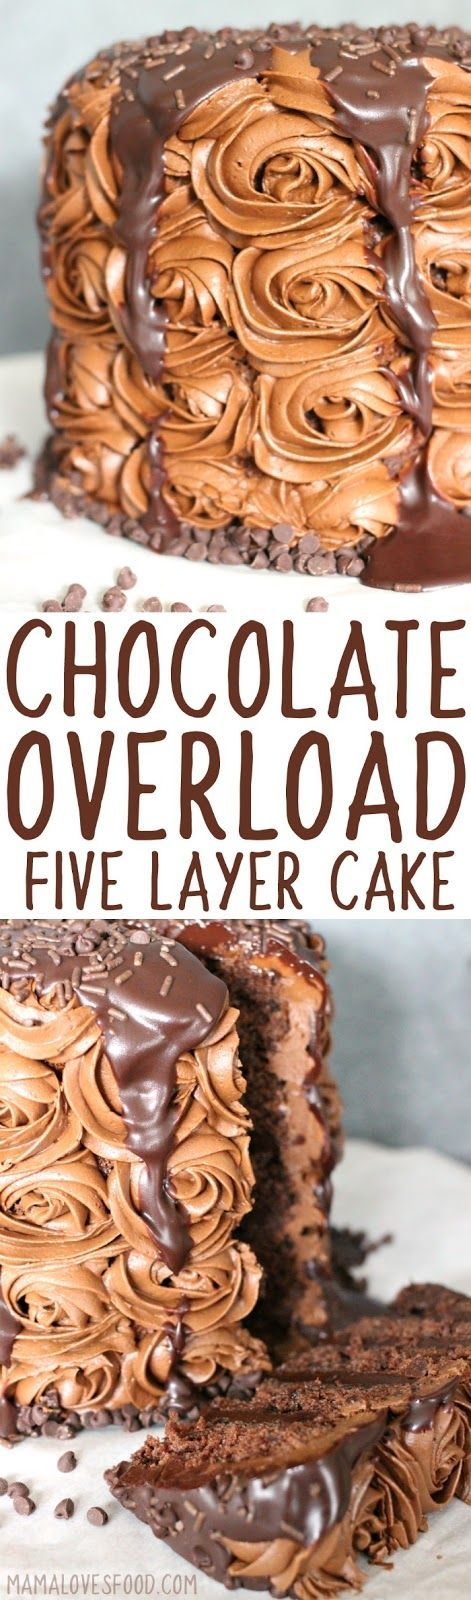 might be the best cake i ever made!!!   Easy Chocolate Overload Cake made with Box Cake Mix - How to Make an Amazing 5 Layer Rich Chocolate Cake